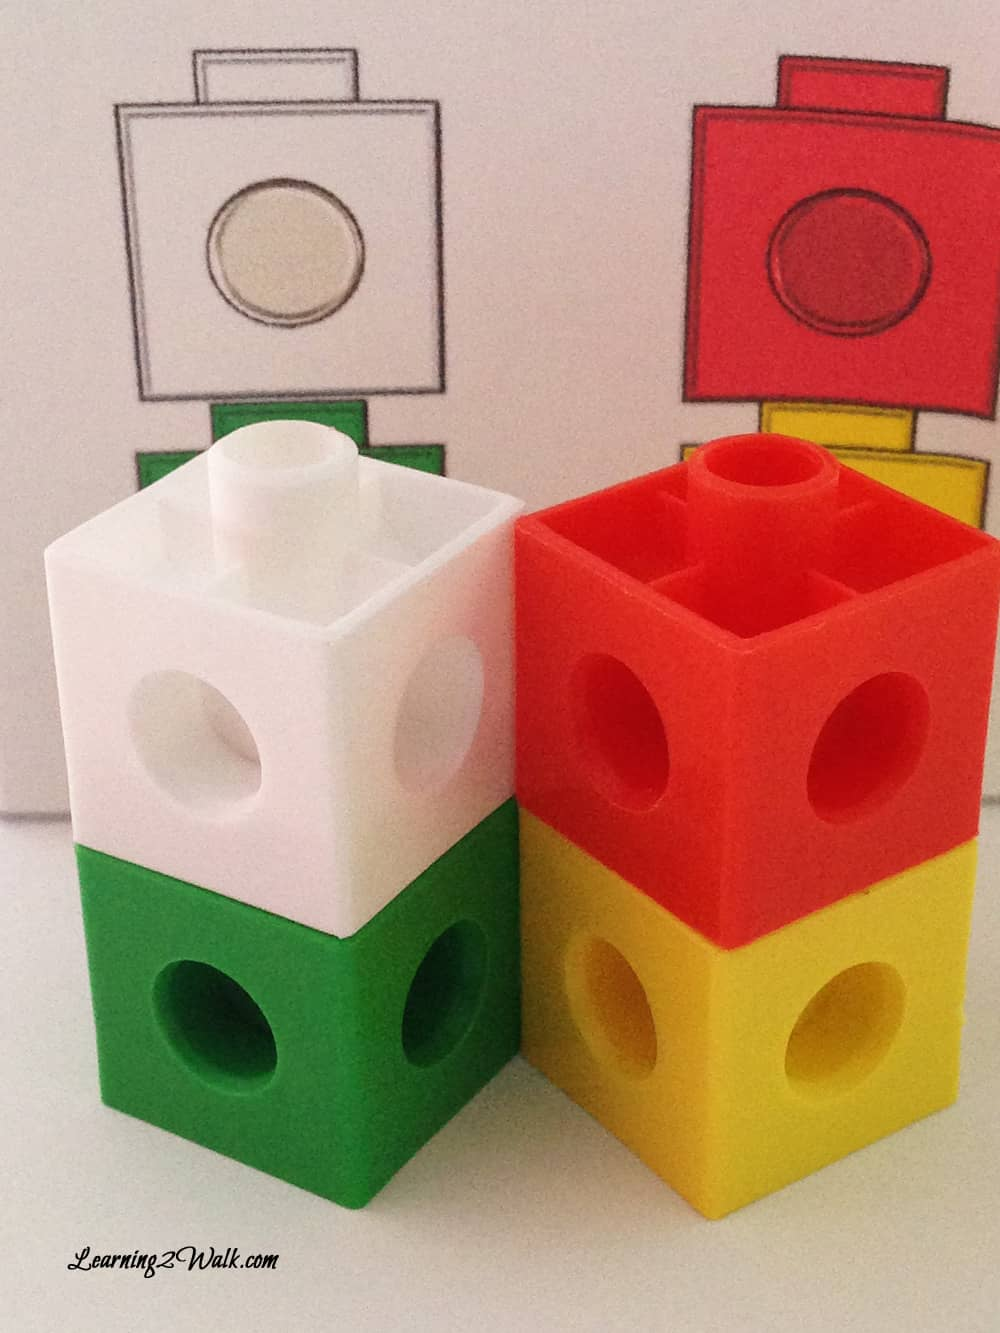 Wondering what to do with those snap cubes? Try some color snap cube pattern matching with these free worksheets.